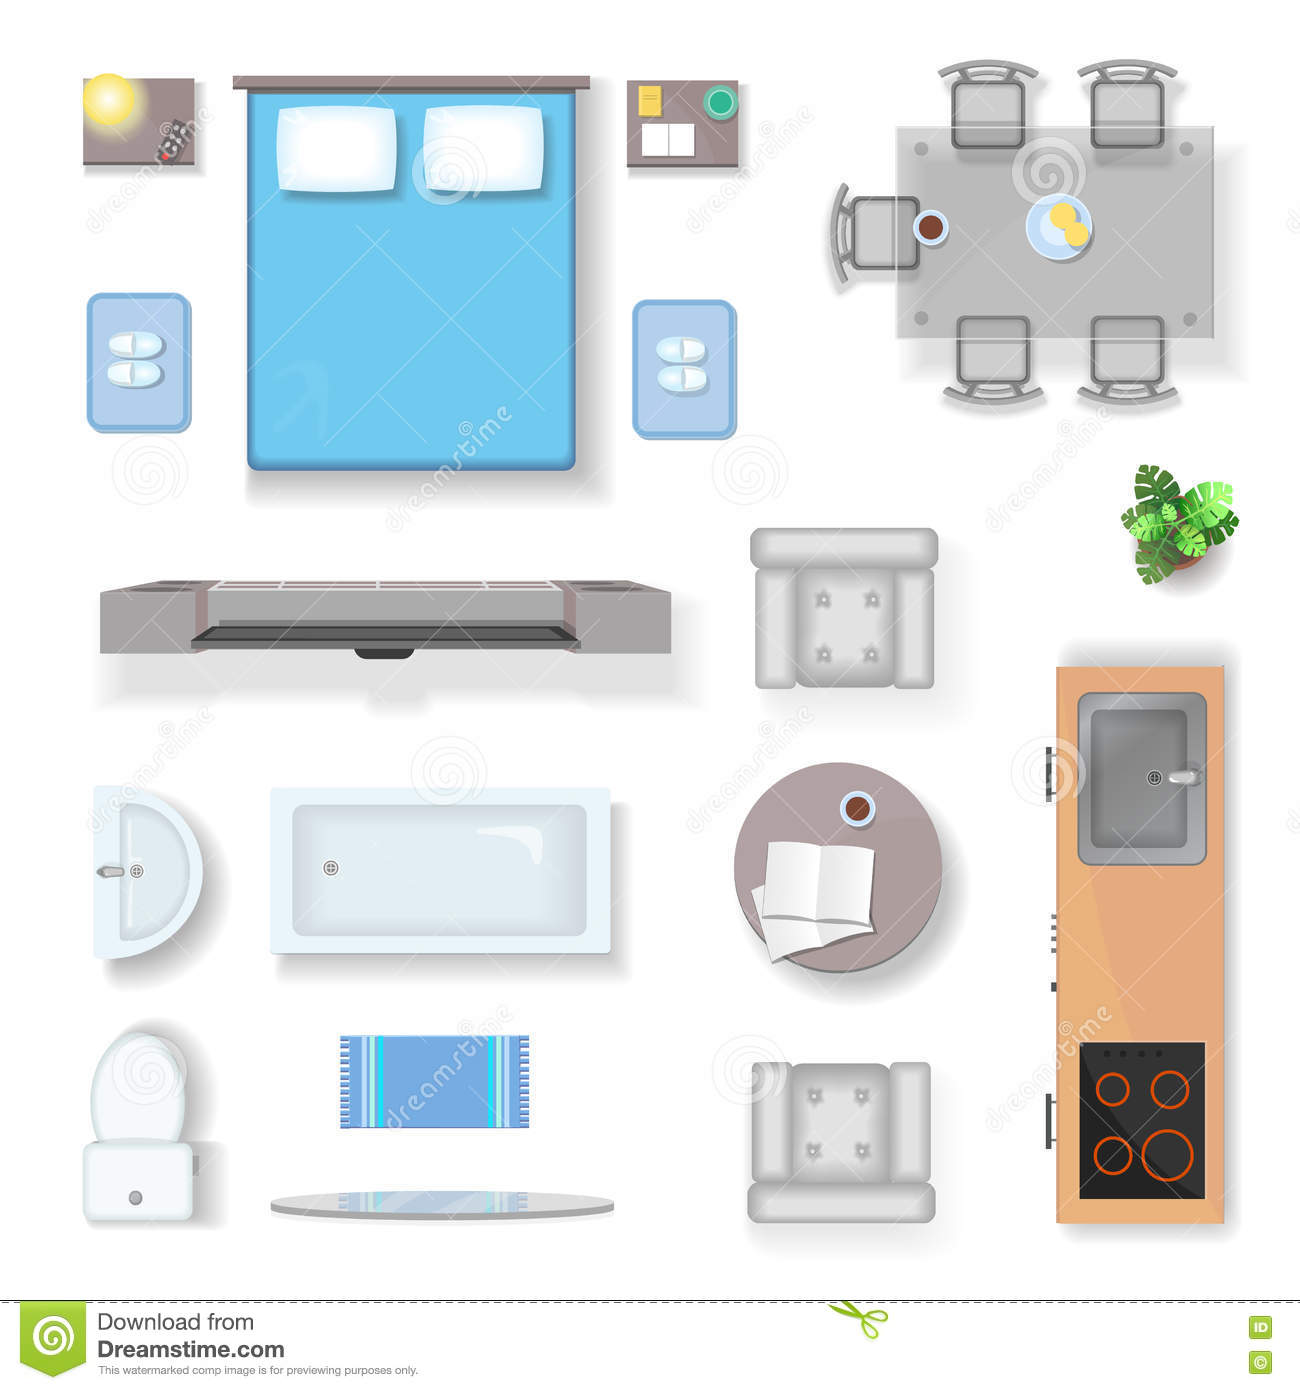 Apartment Top View Living Room Bedroom And Bathroom Furniture Design Elements Realistic Vector